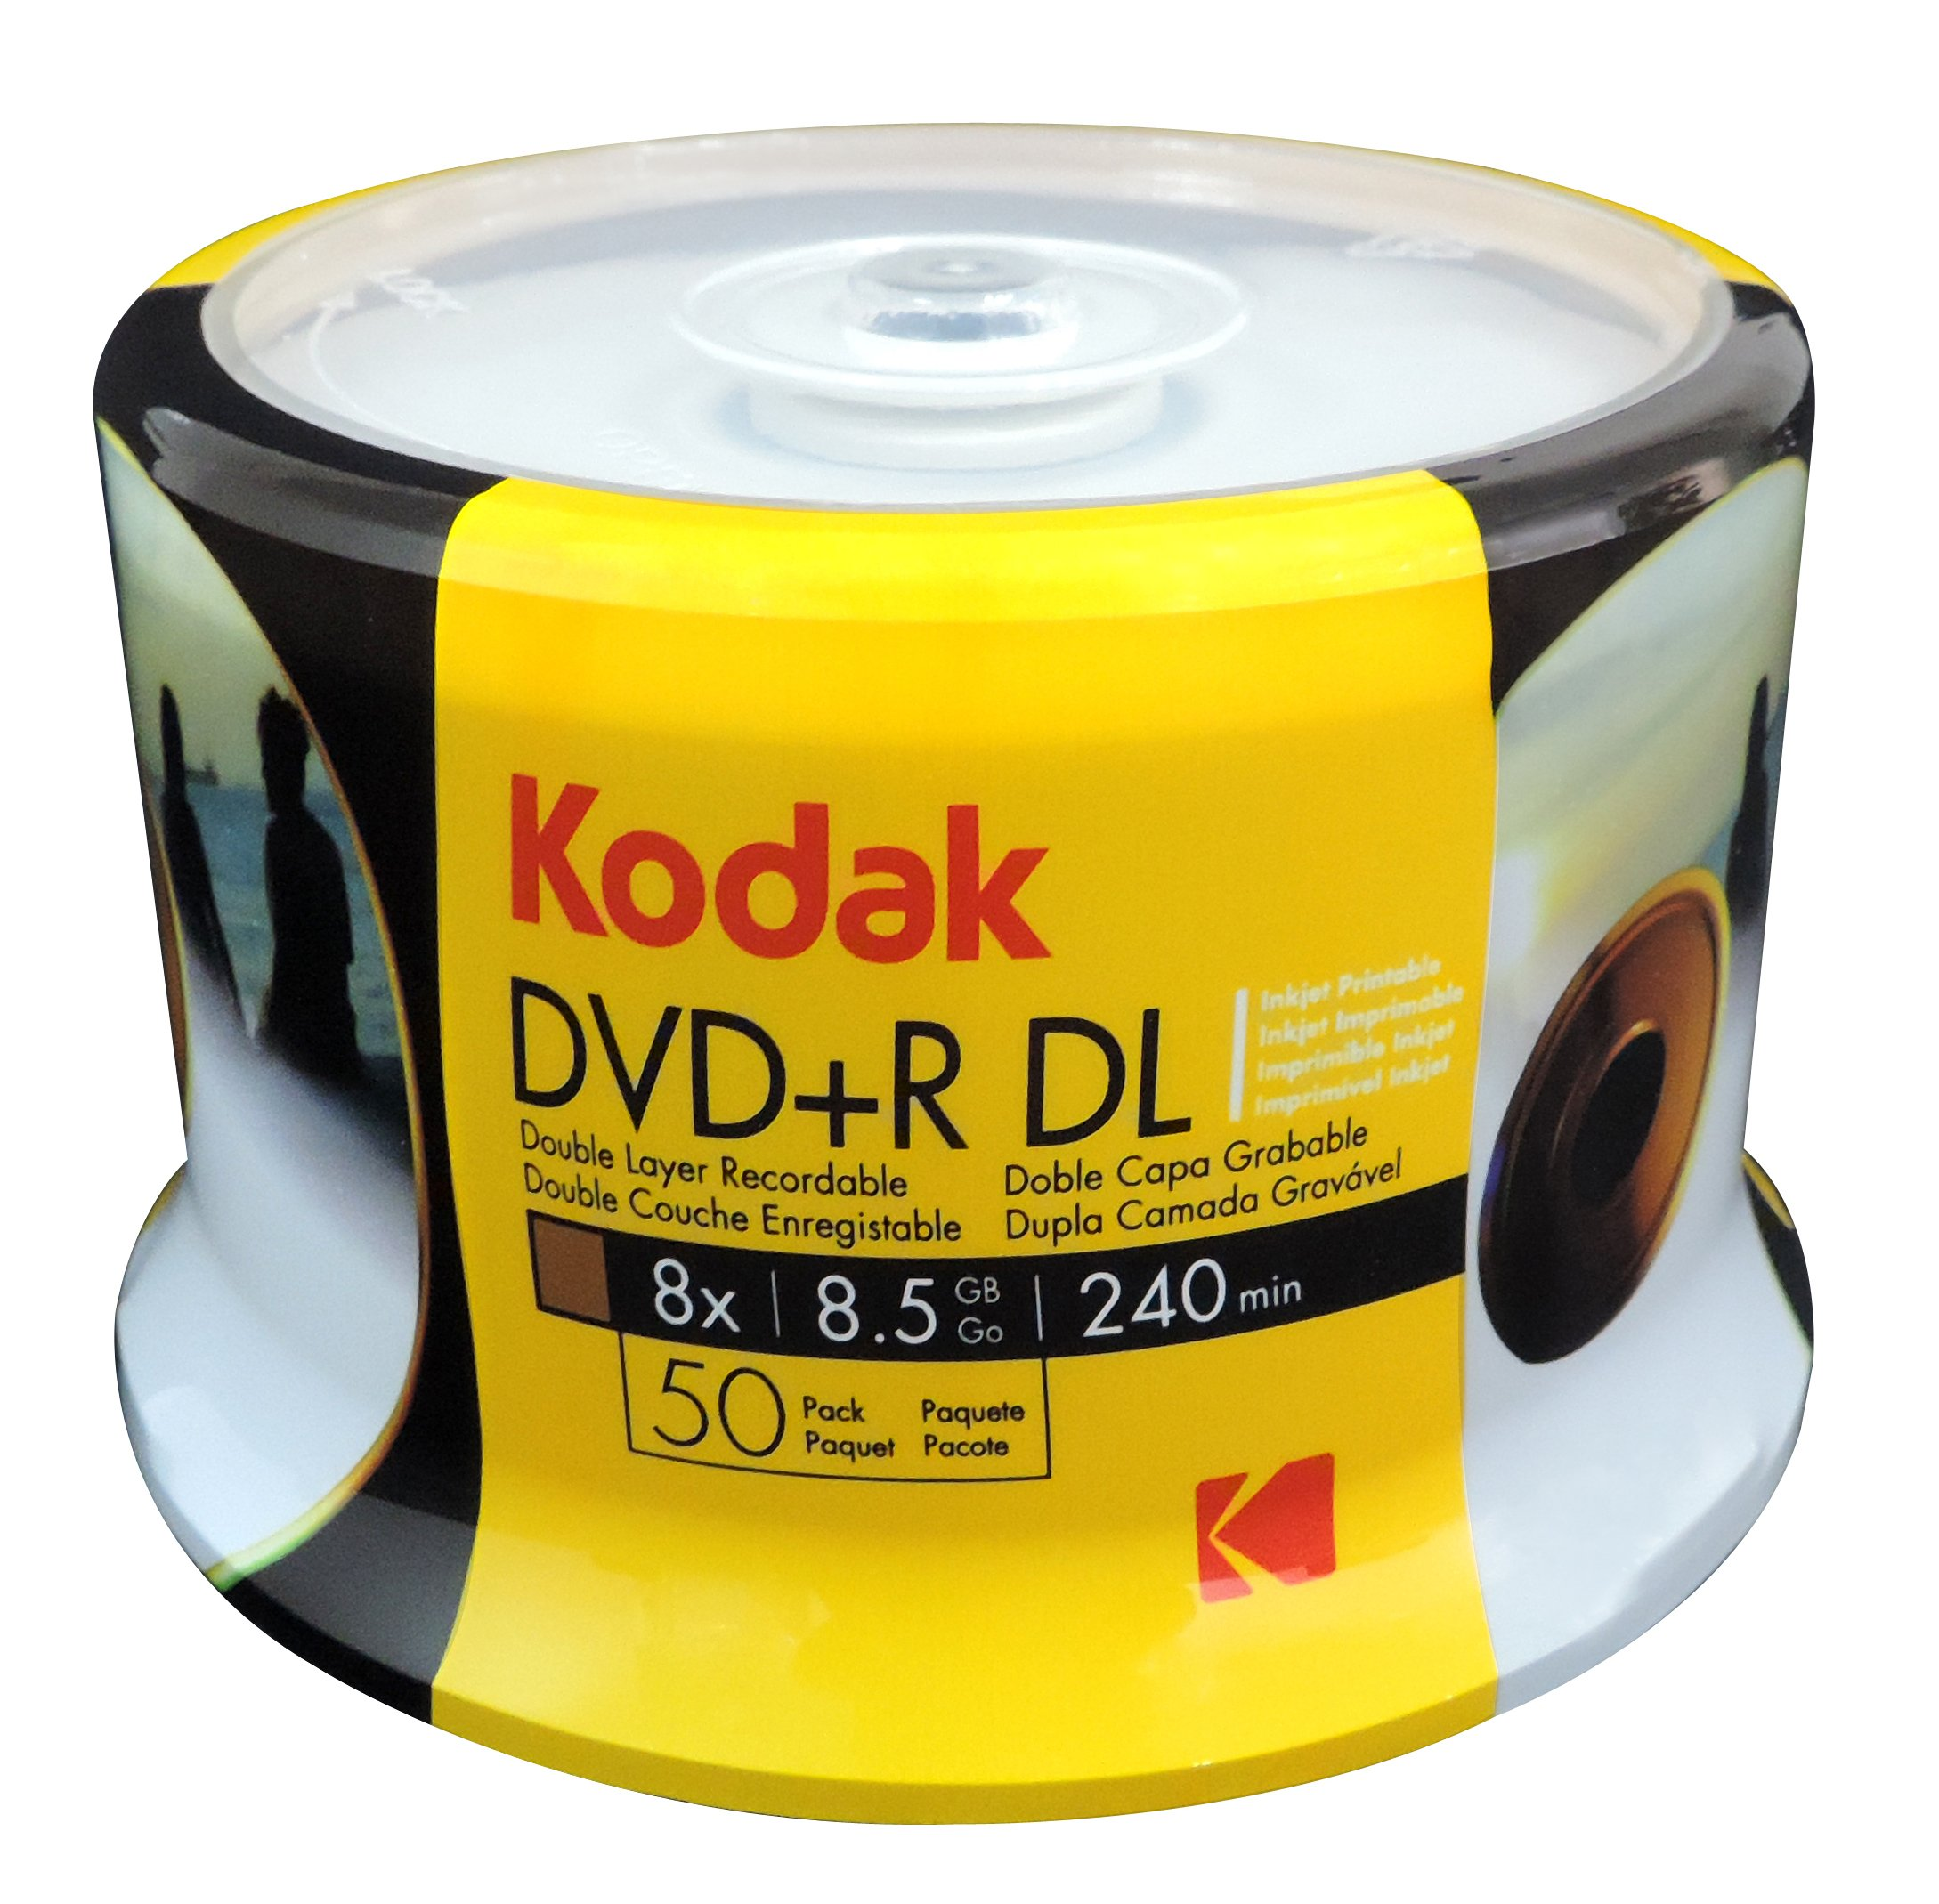 KODAK DVD+R DL 8x 8.5GB 50-Pack Cakebox, White Inkjet Printable